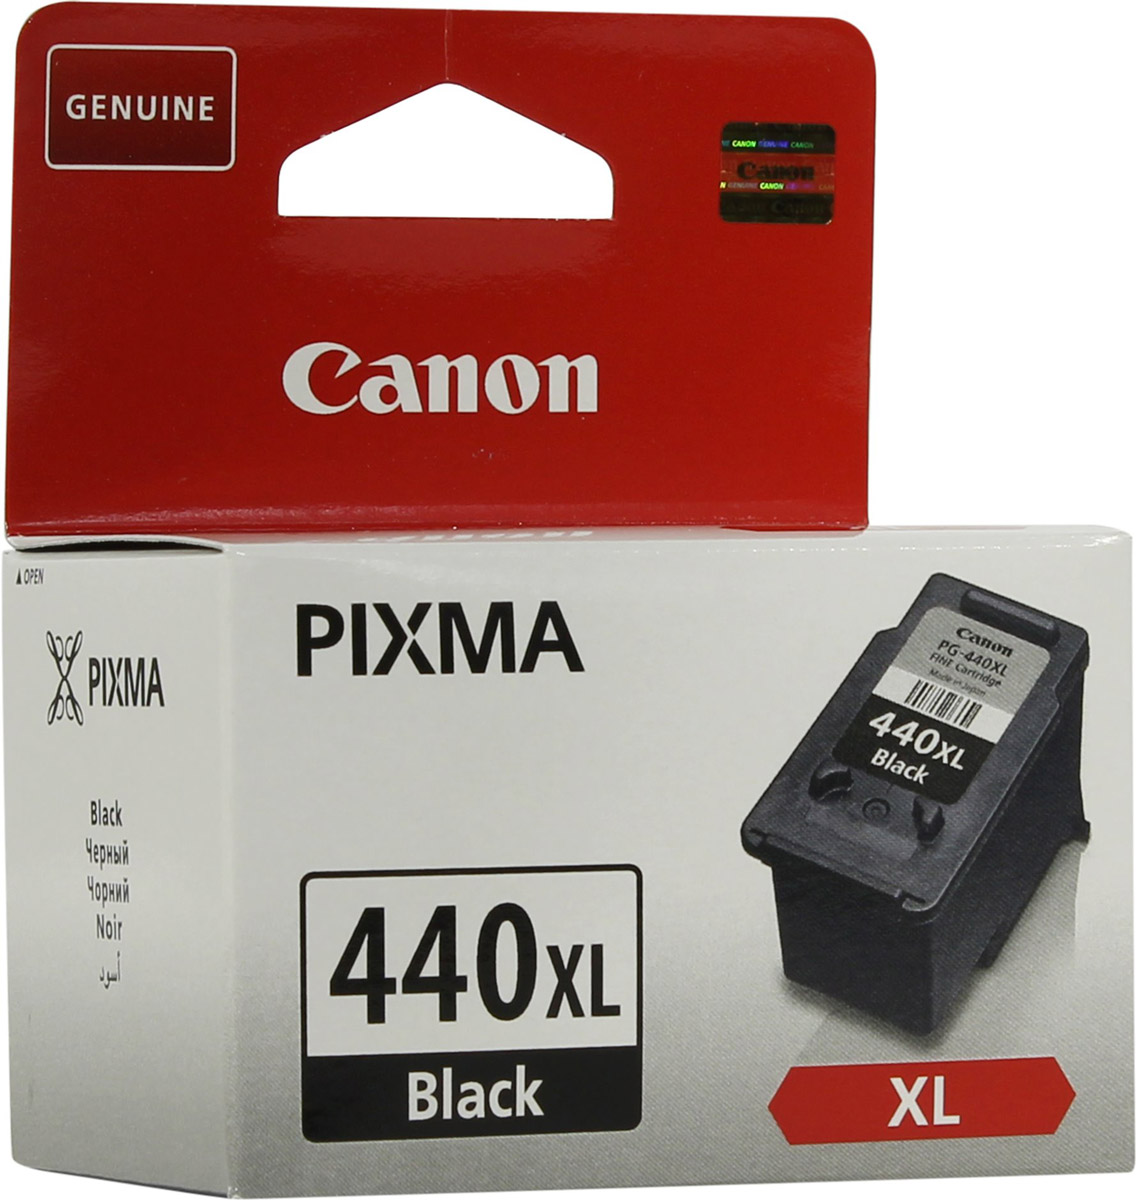 Фото - Canon PG-440 BK XL, Black картридж для струйных принтеров Pixma MG2140/MG3140/MG4140/MX374/MX434/MX514 meike fc 100 for nikon canon fc 100 macro ring flash light nikon d7100 d7000 d5200 d5100 d5000 d3200 d310